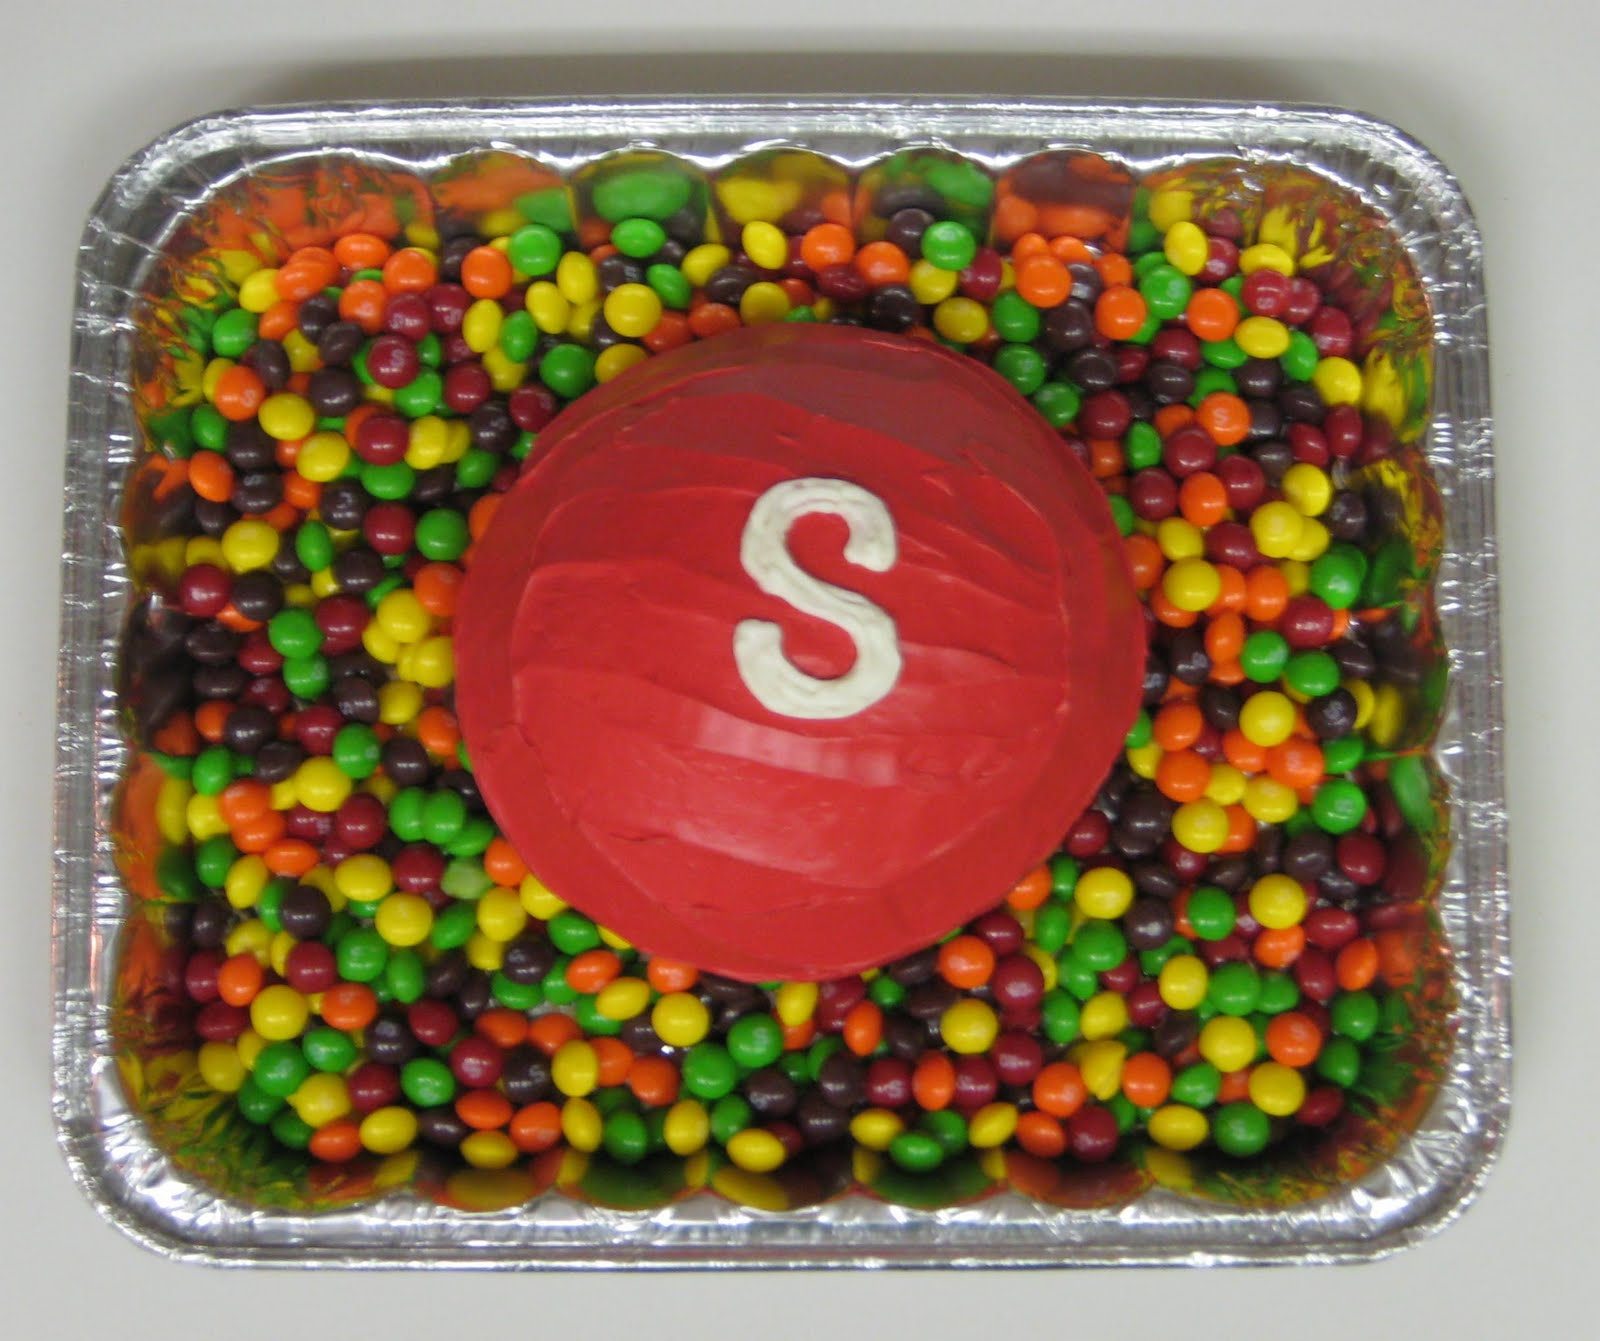 skittle - définition - What is